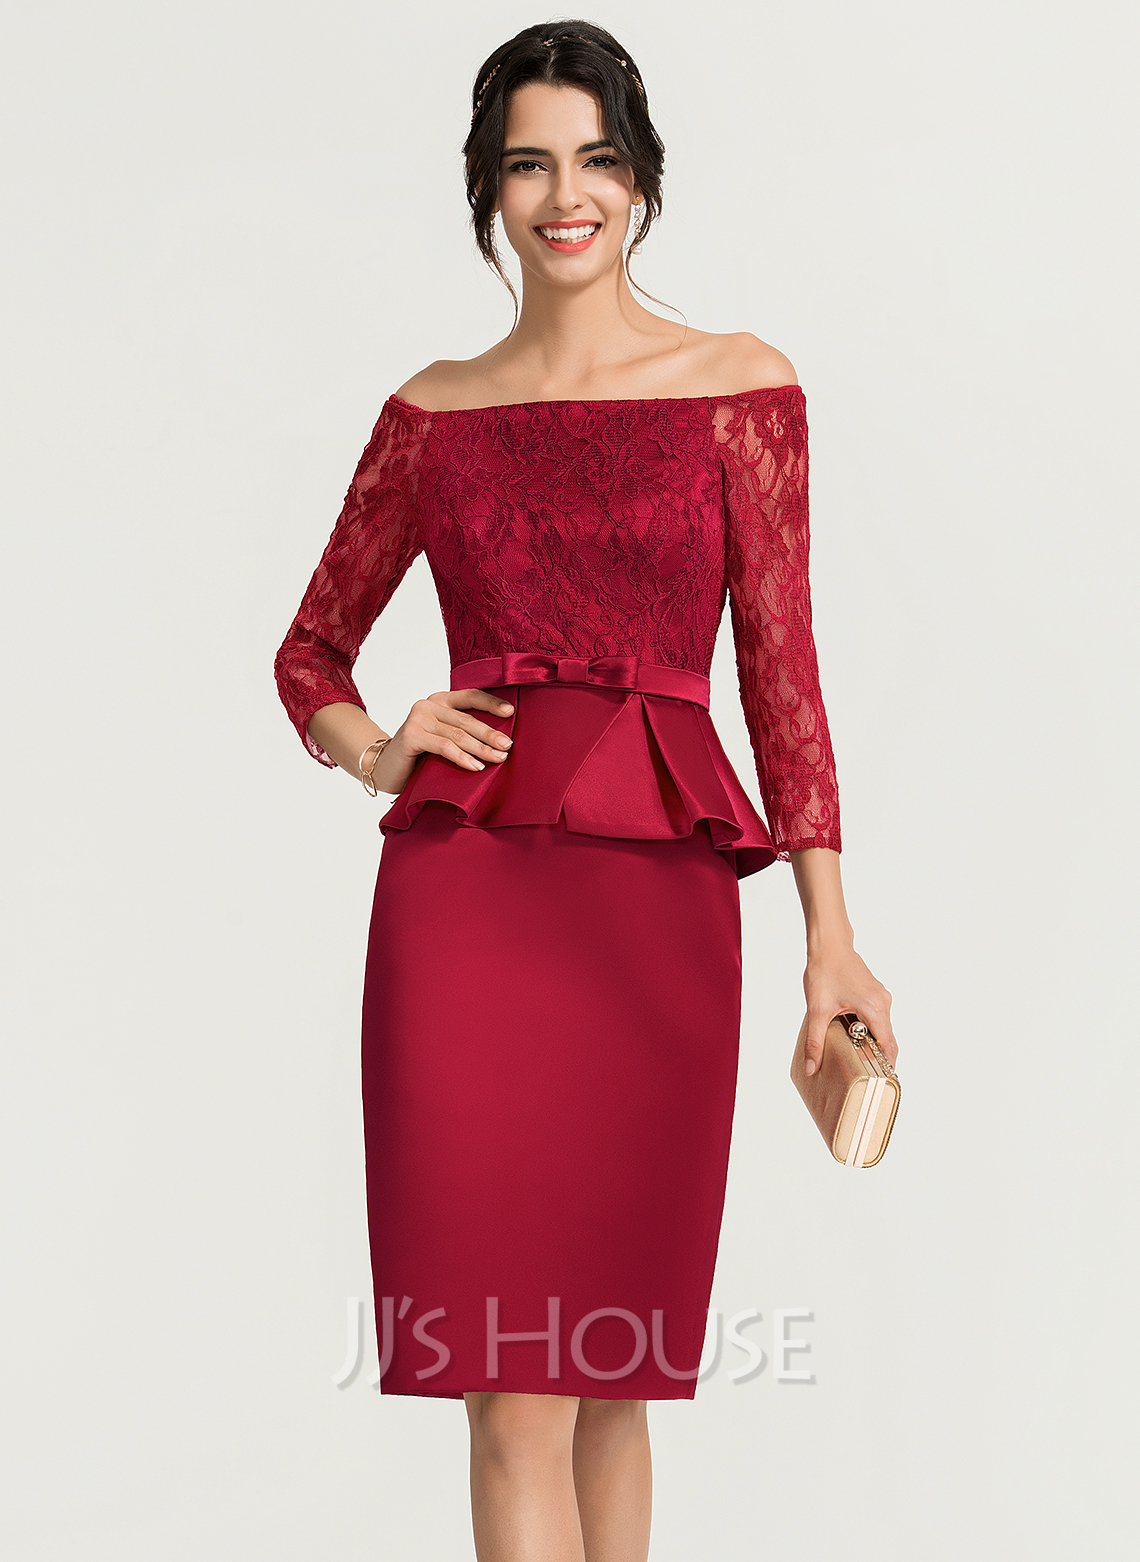 Sheath/Column Off-the-Shoulder Knee-Length Satin Cocktail Dress